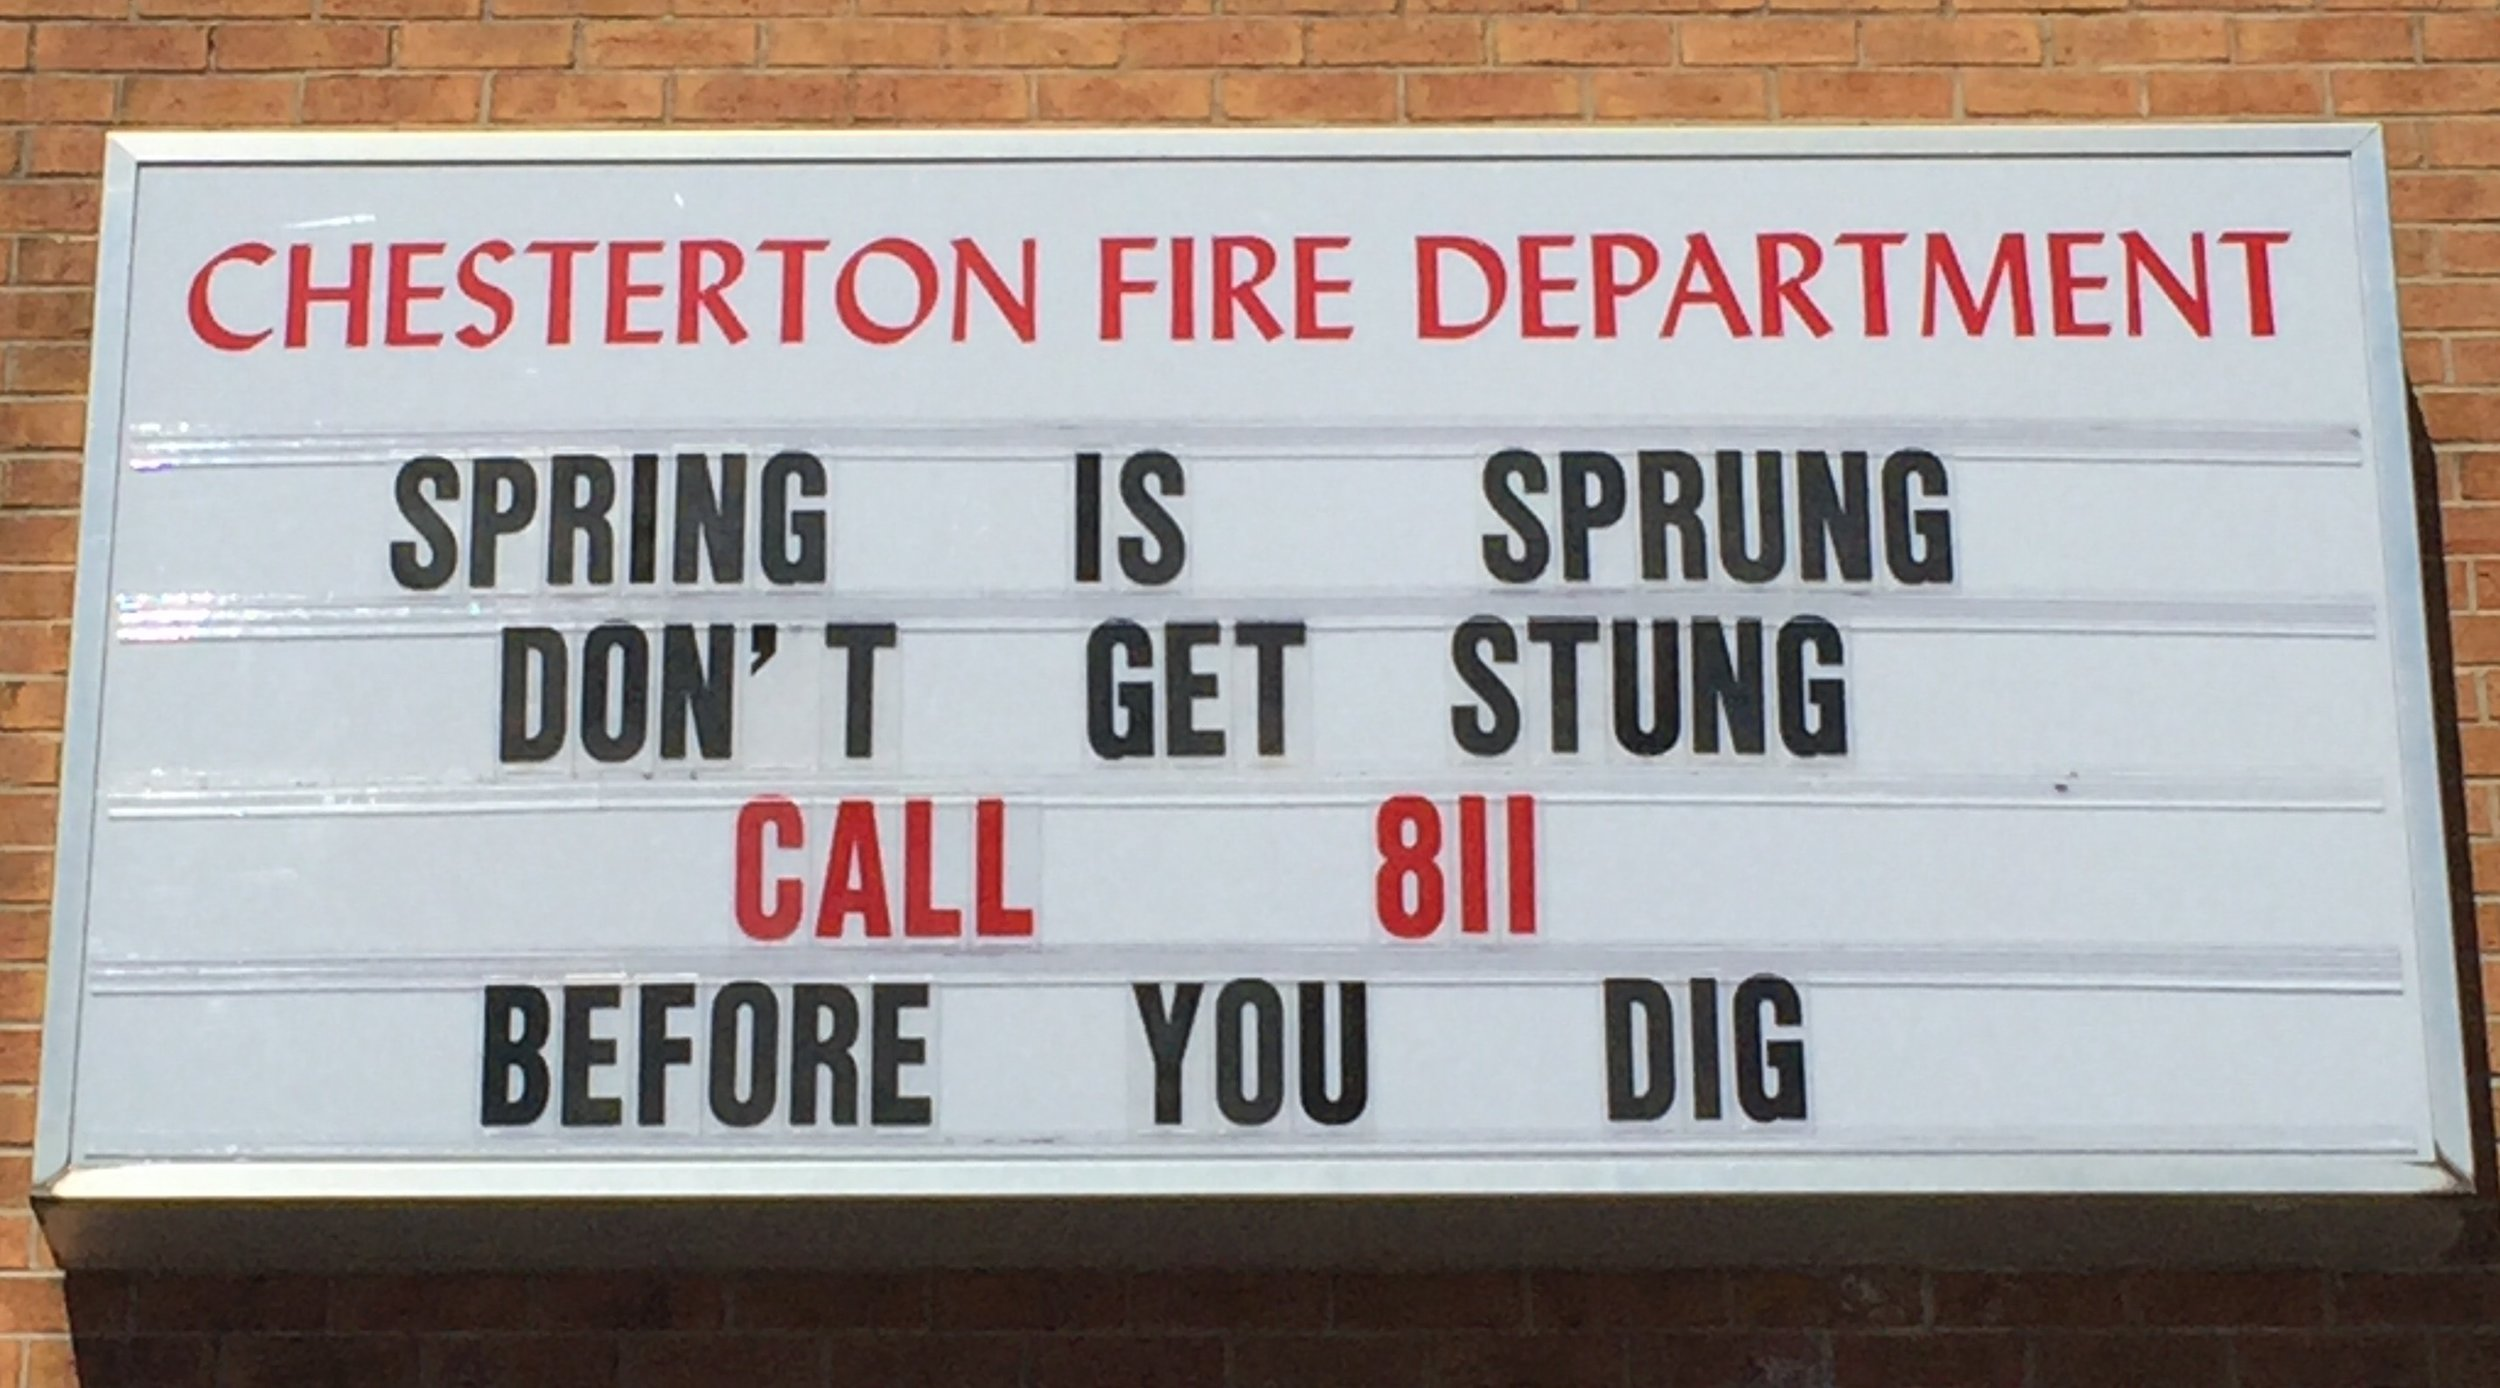 """Chesterton fire department - """"spring has Sprung, don't get stung..."""""""